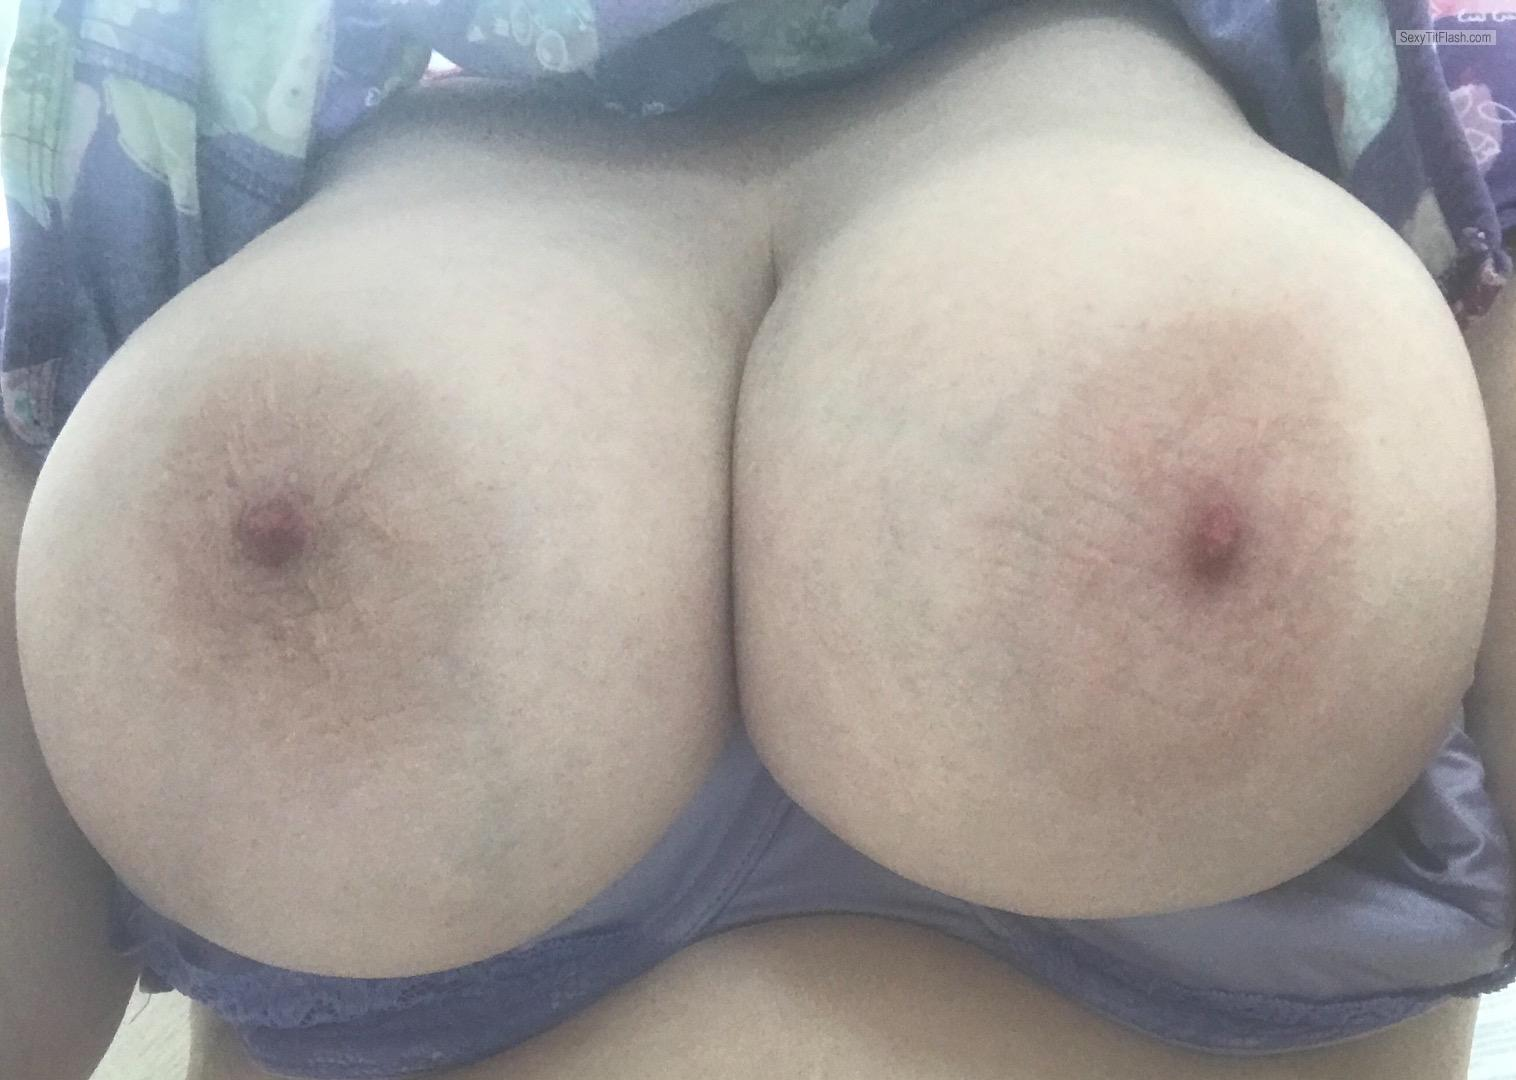 Tit Flash: Wife's Extremely Big Tits (Selfie) - Big Tits from United States